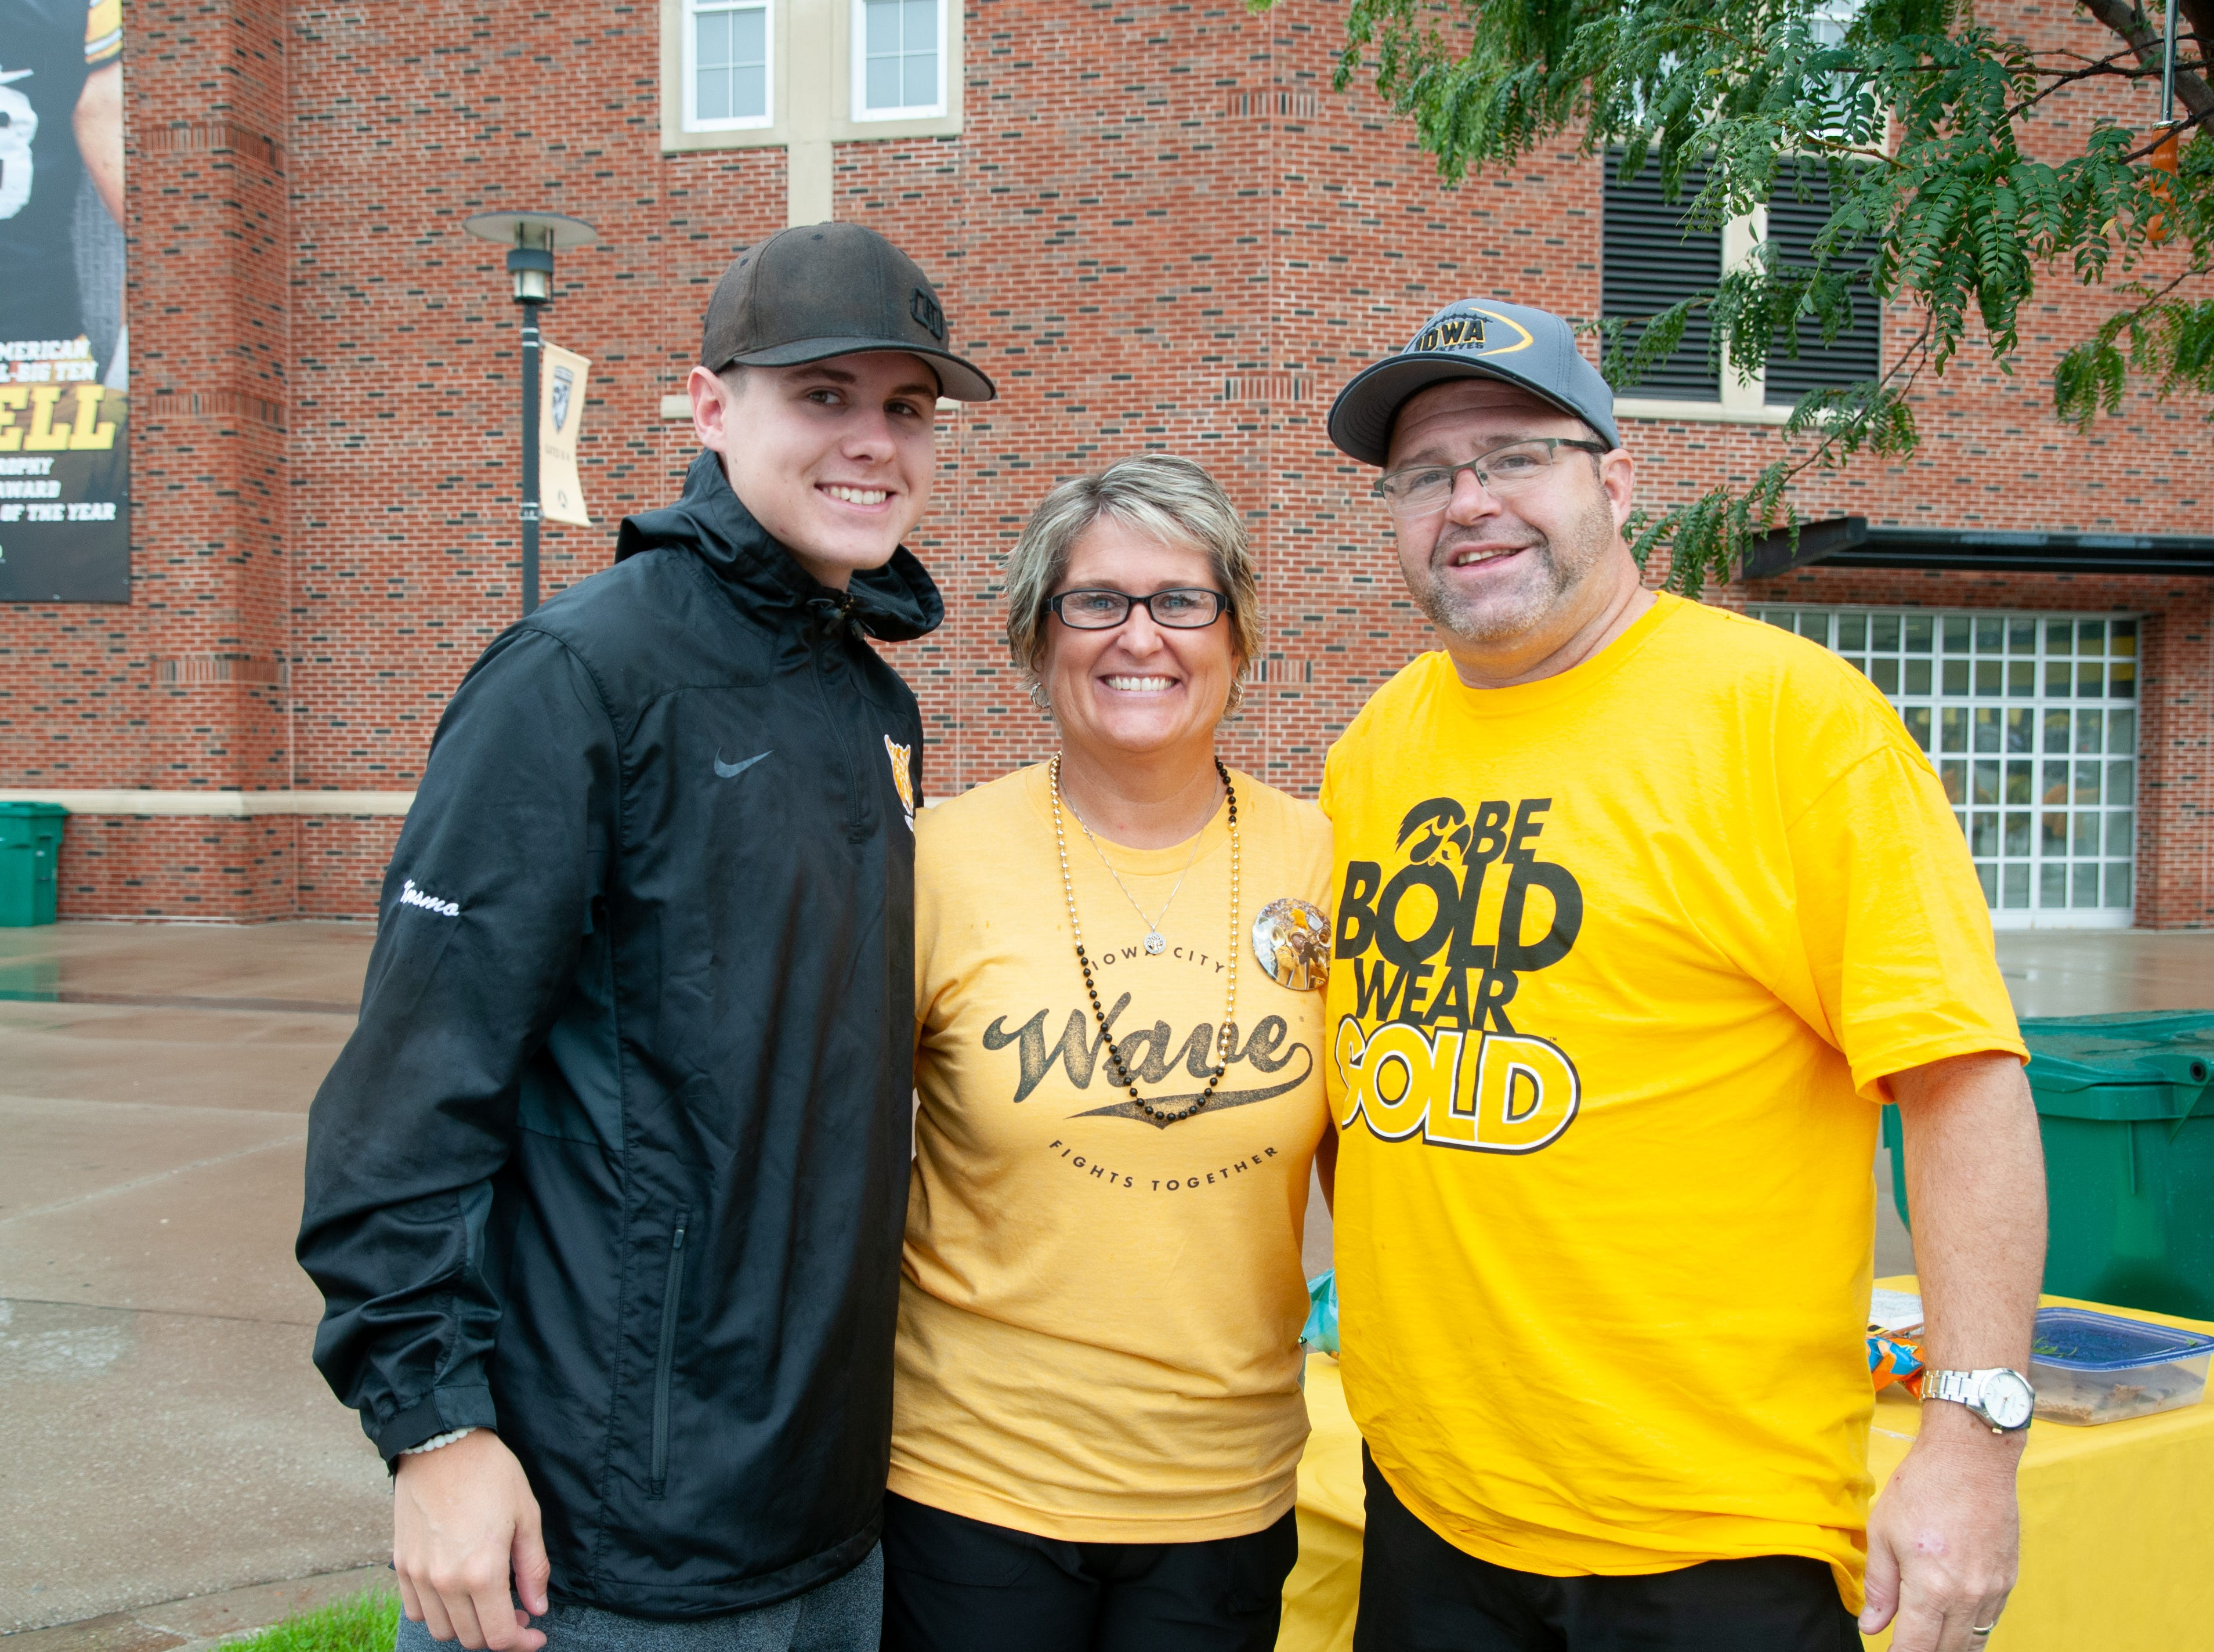 Kacey, 19, (left), Amy, 48, and Kevin Korsmo, 54, of Atkins, Saturday, Sept. 1, 2018, while tailgating before the Iowa game against Northern Illinois in Iowa City.